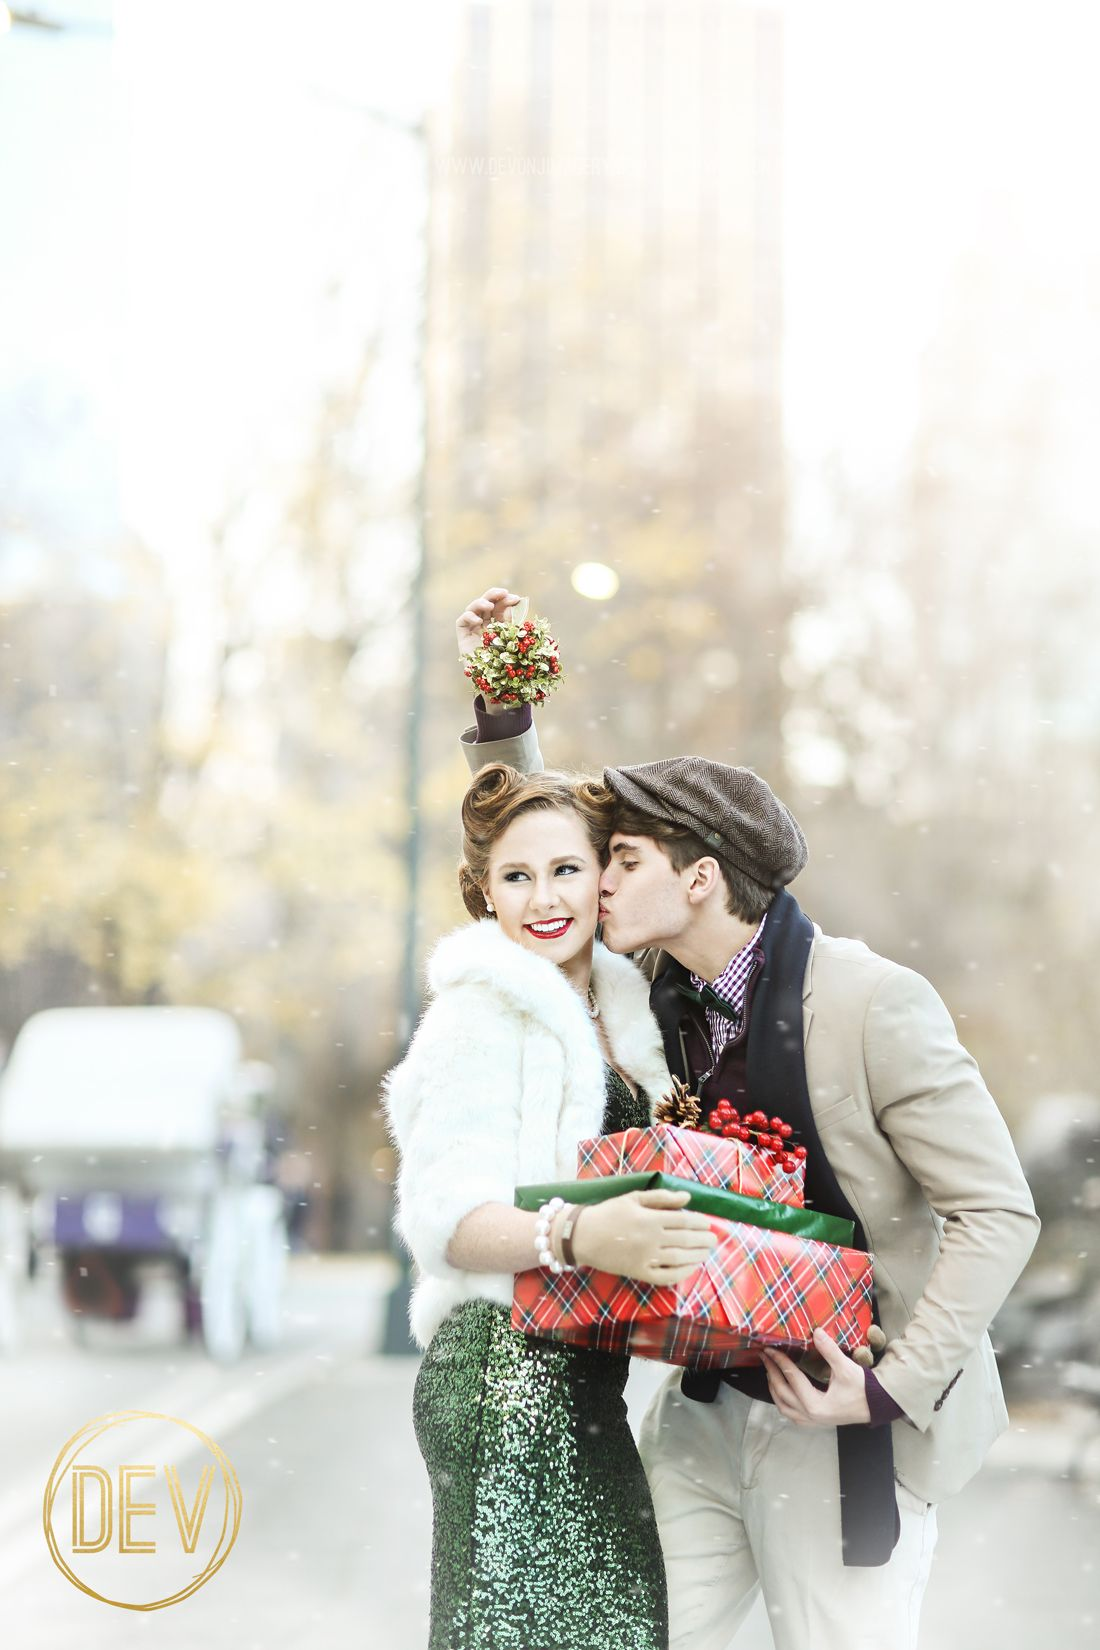 senior engagement couple vintage picture portrait ideas new york city nyc christmas time mistletoe gifts snow